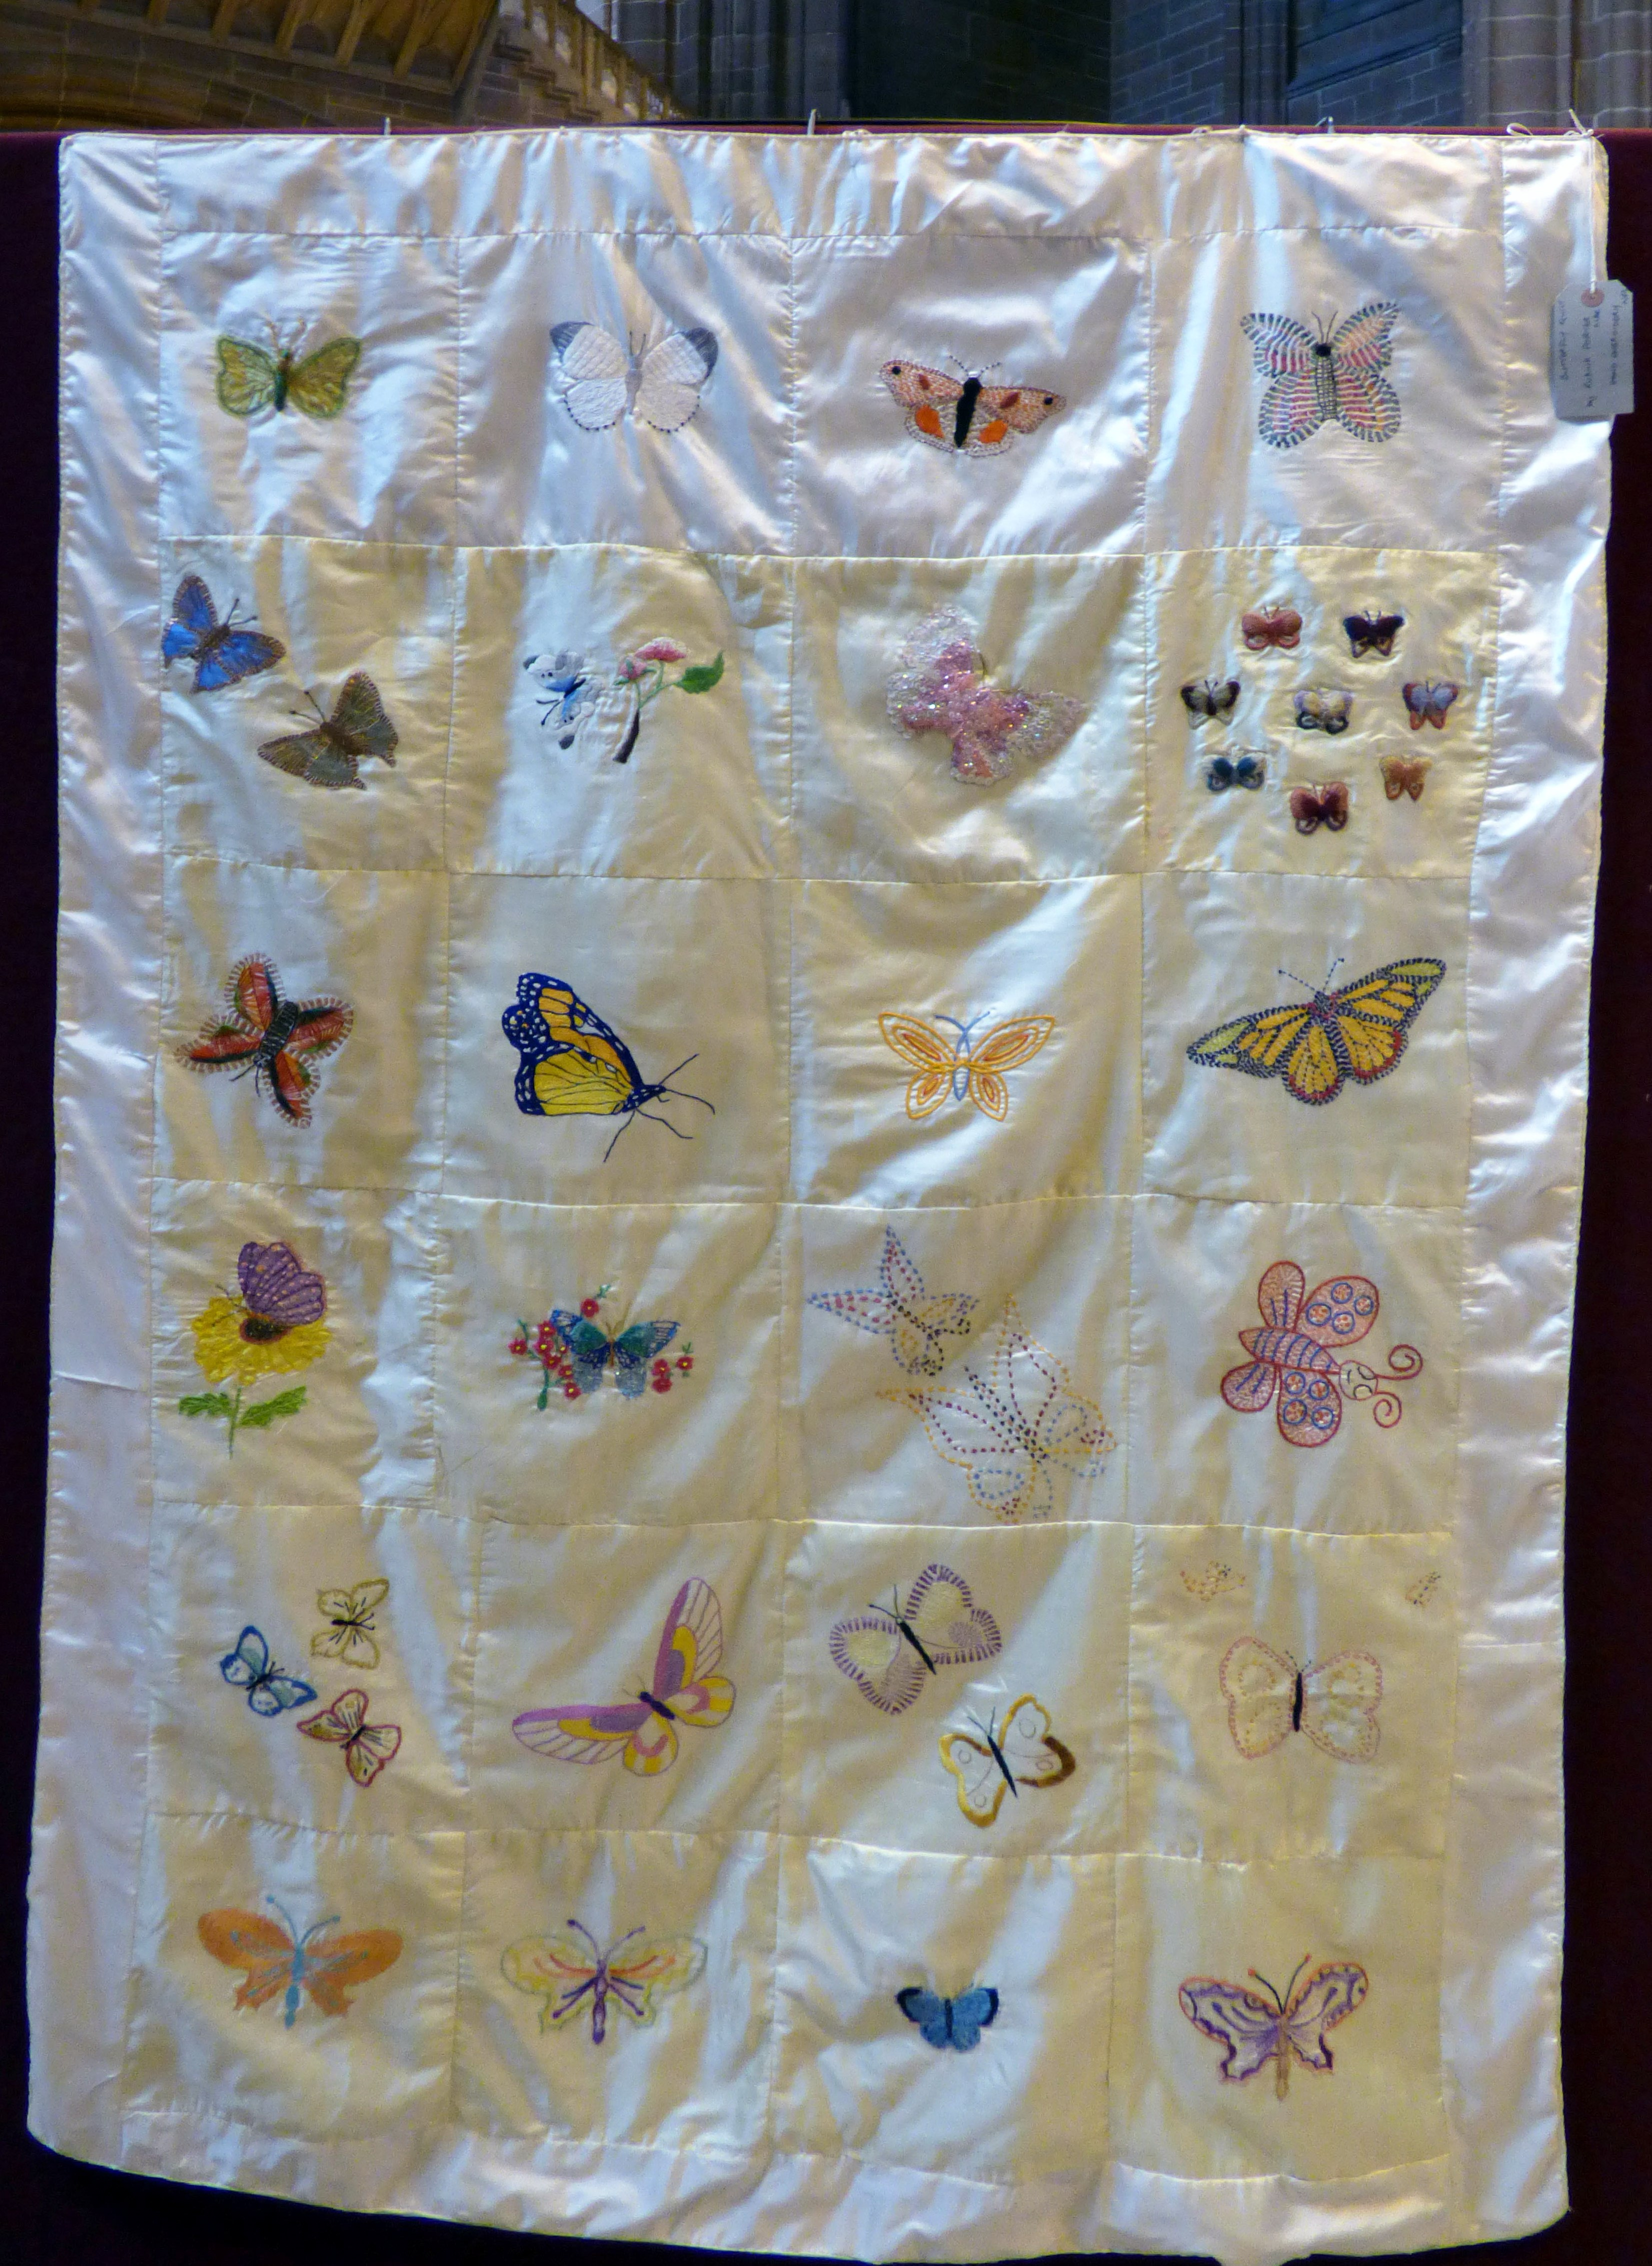 Sreepur BUTTERFLY QUILT at 60 Glorious Years exhibition 2016